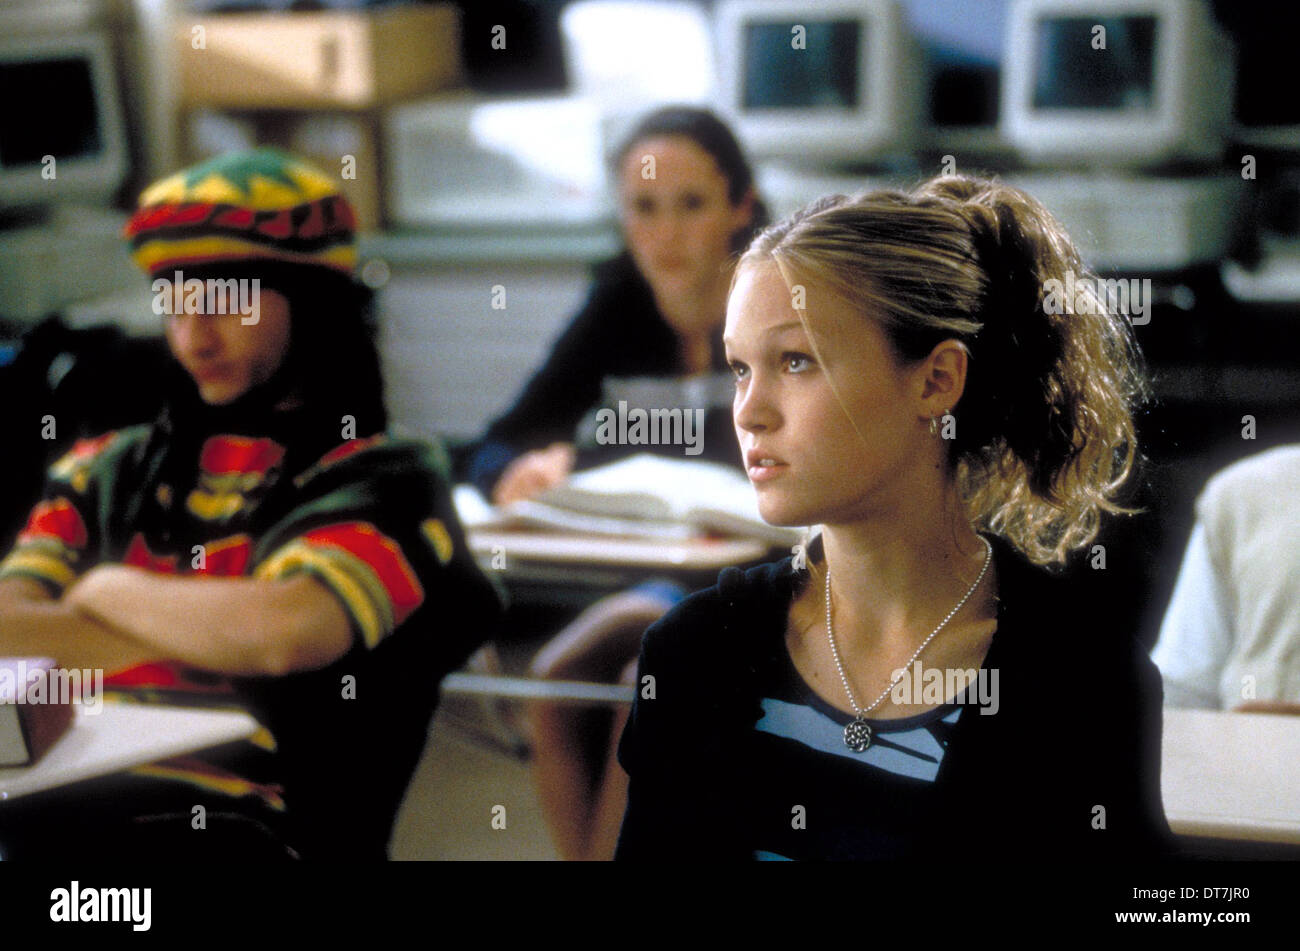 10 Things I Hate About You 1999: JULIA STILES 10 THINGS I HATE ABOUT YOU (1999 Stock Photo